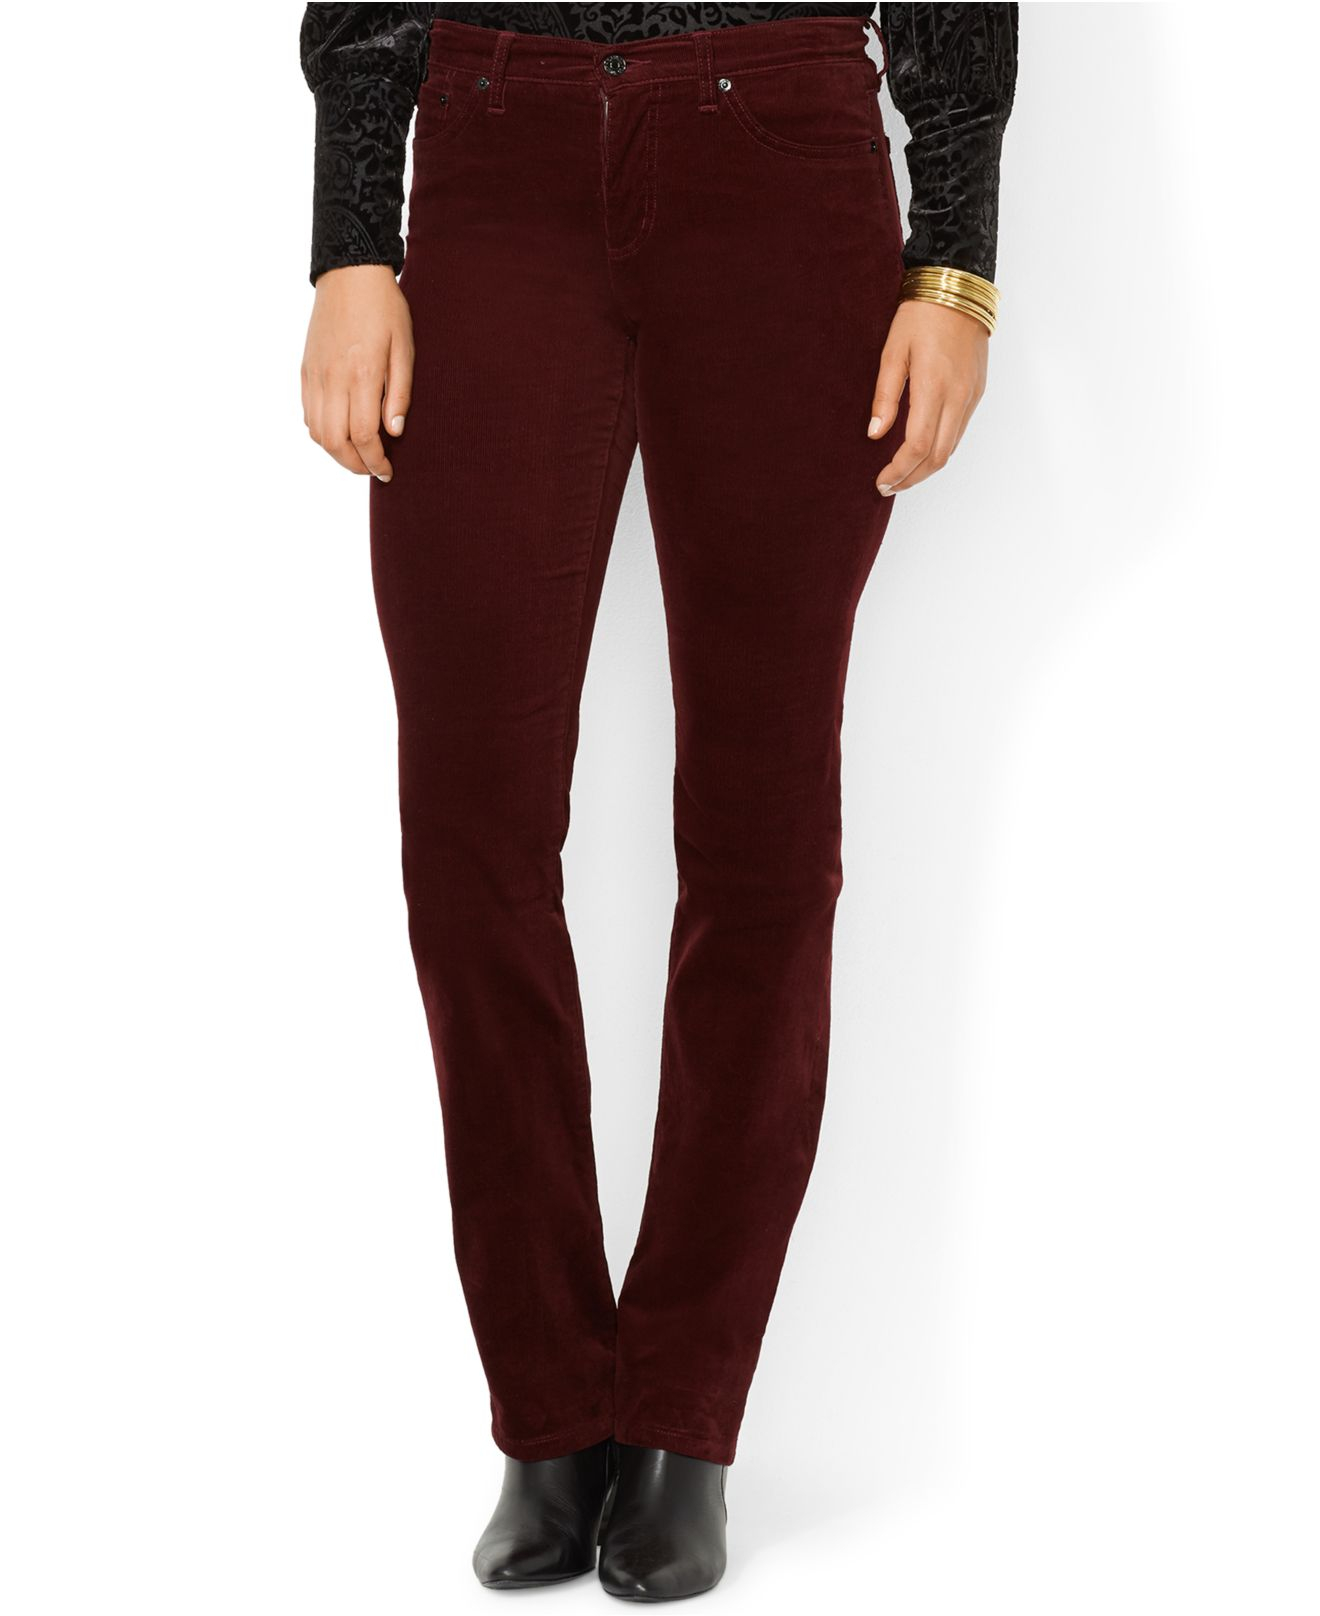 Lauren by ralph lauren Plus Size Corduroy Straight-Leg Pants in ...